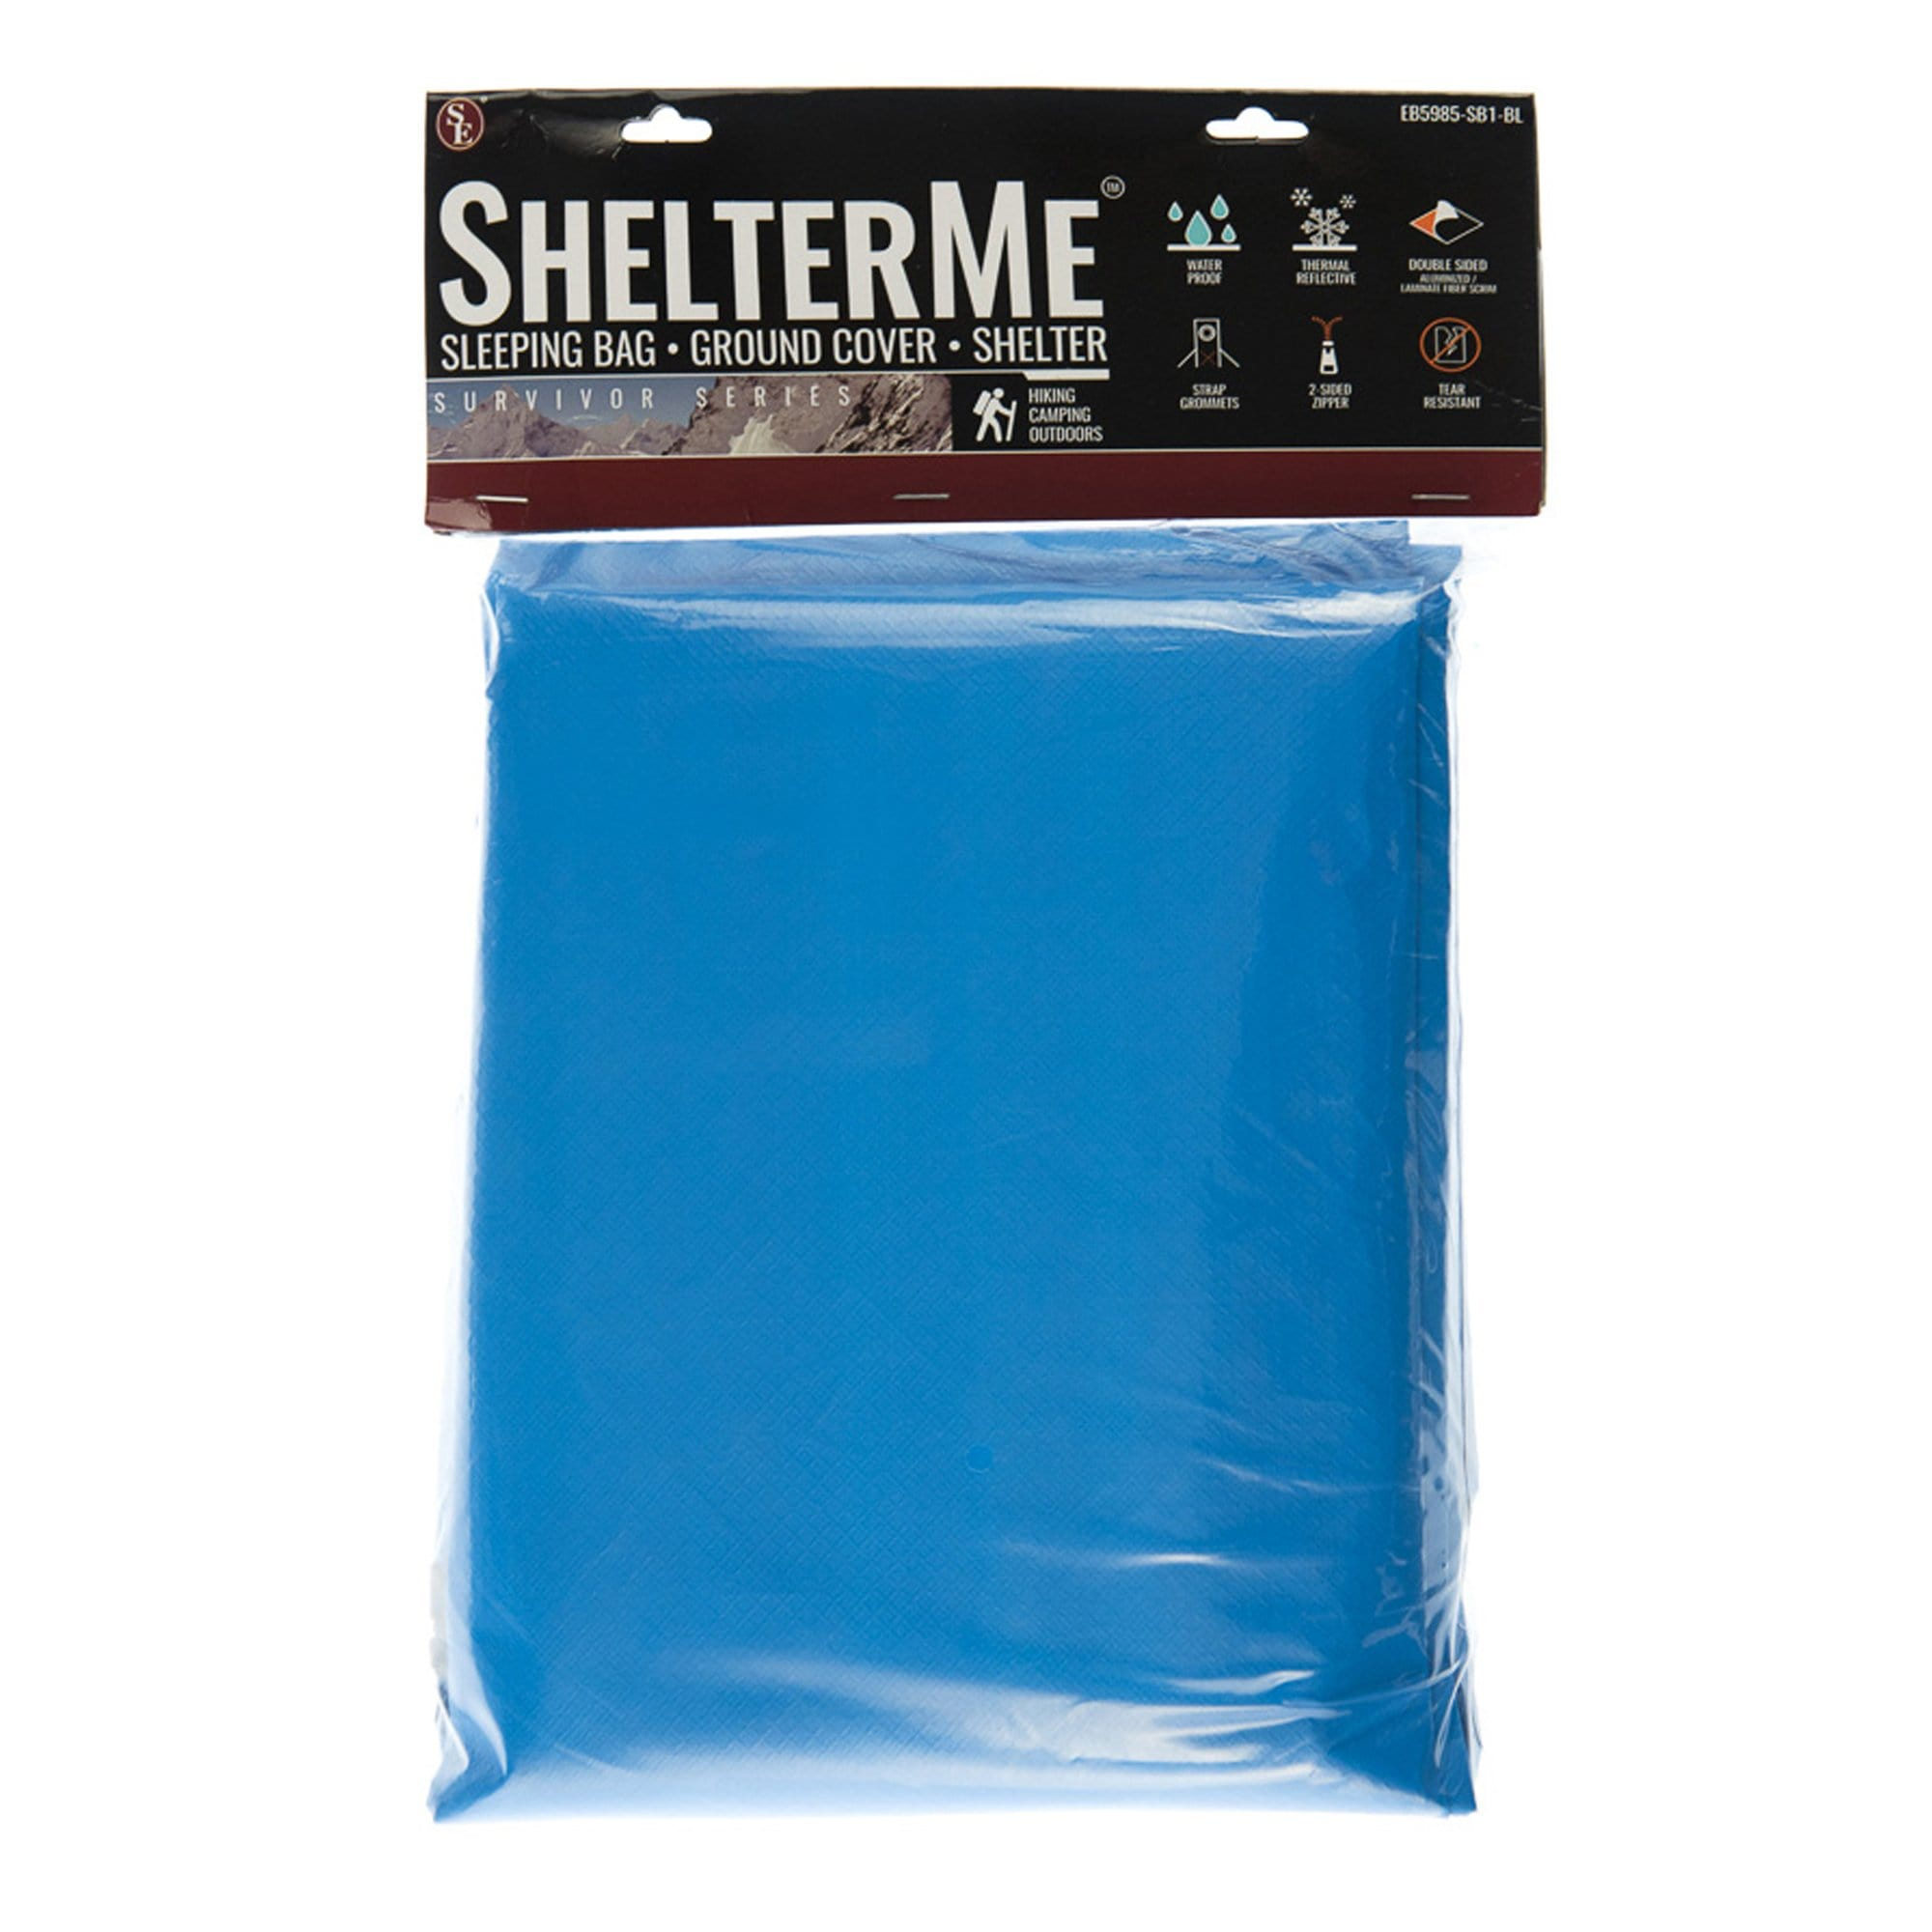 "Heavy Duty Emergency Sleeping Bag, Waterproof, 82""x 58"", Blue Color (Single Person)"